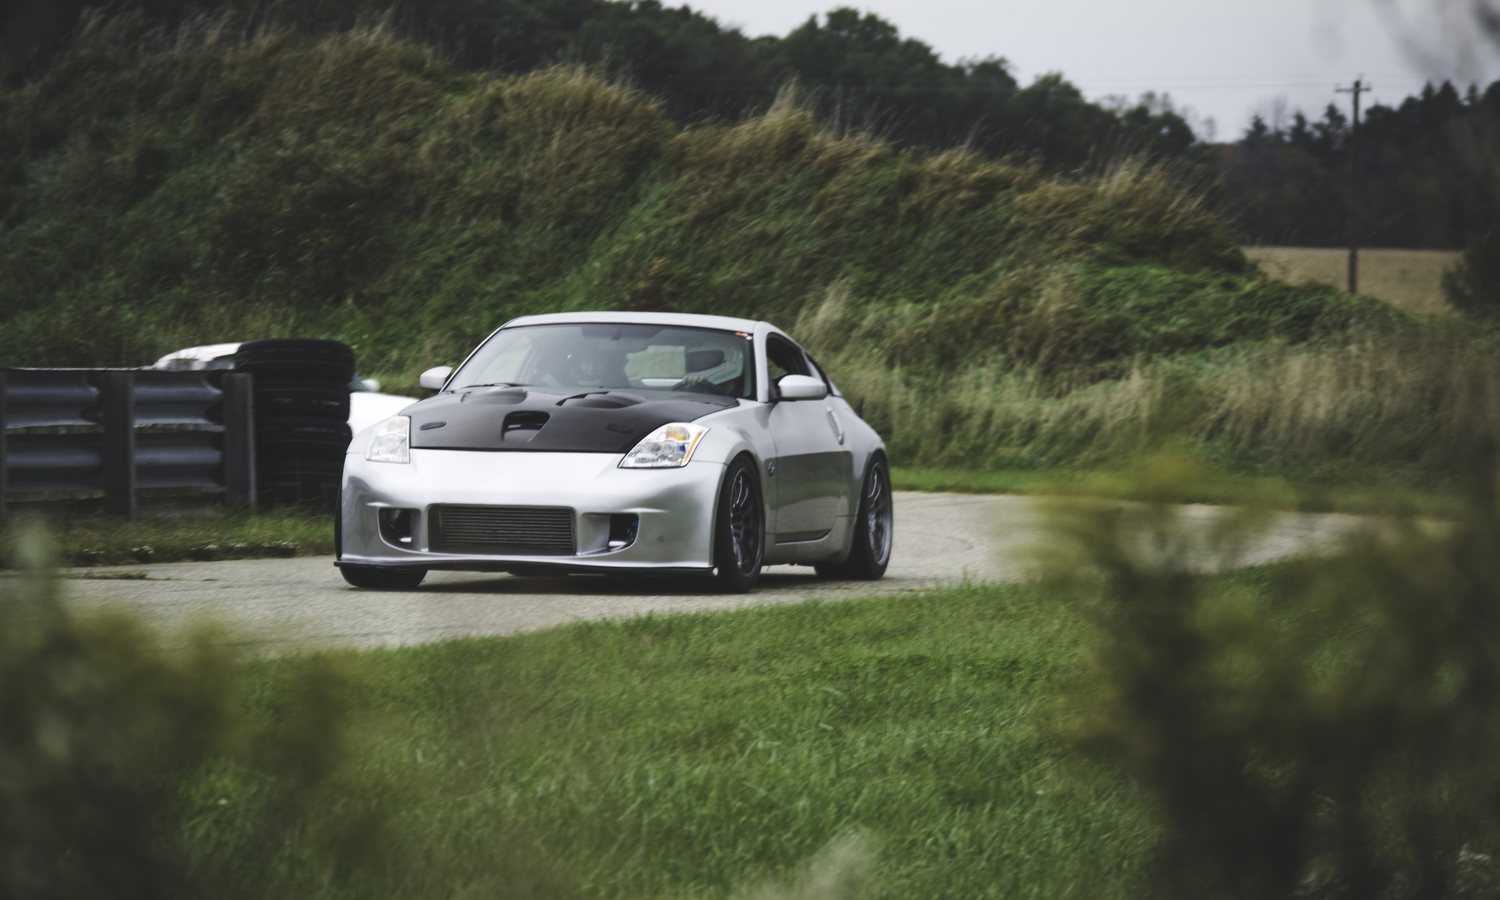 Joshua's Turbo 350Z is just that. A tracked turbo 350Z, those words alone make you want to pay attention to what times this car can put down.